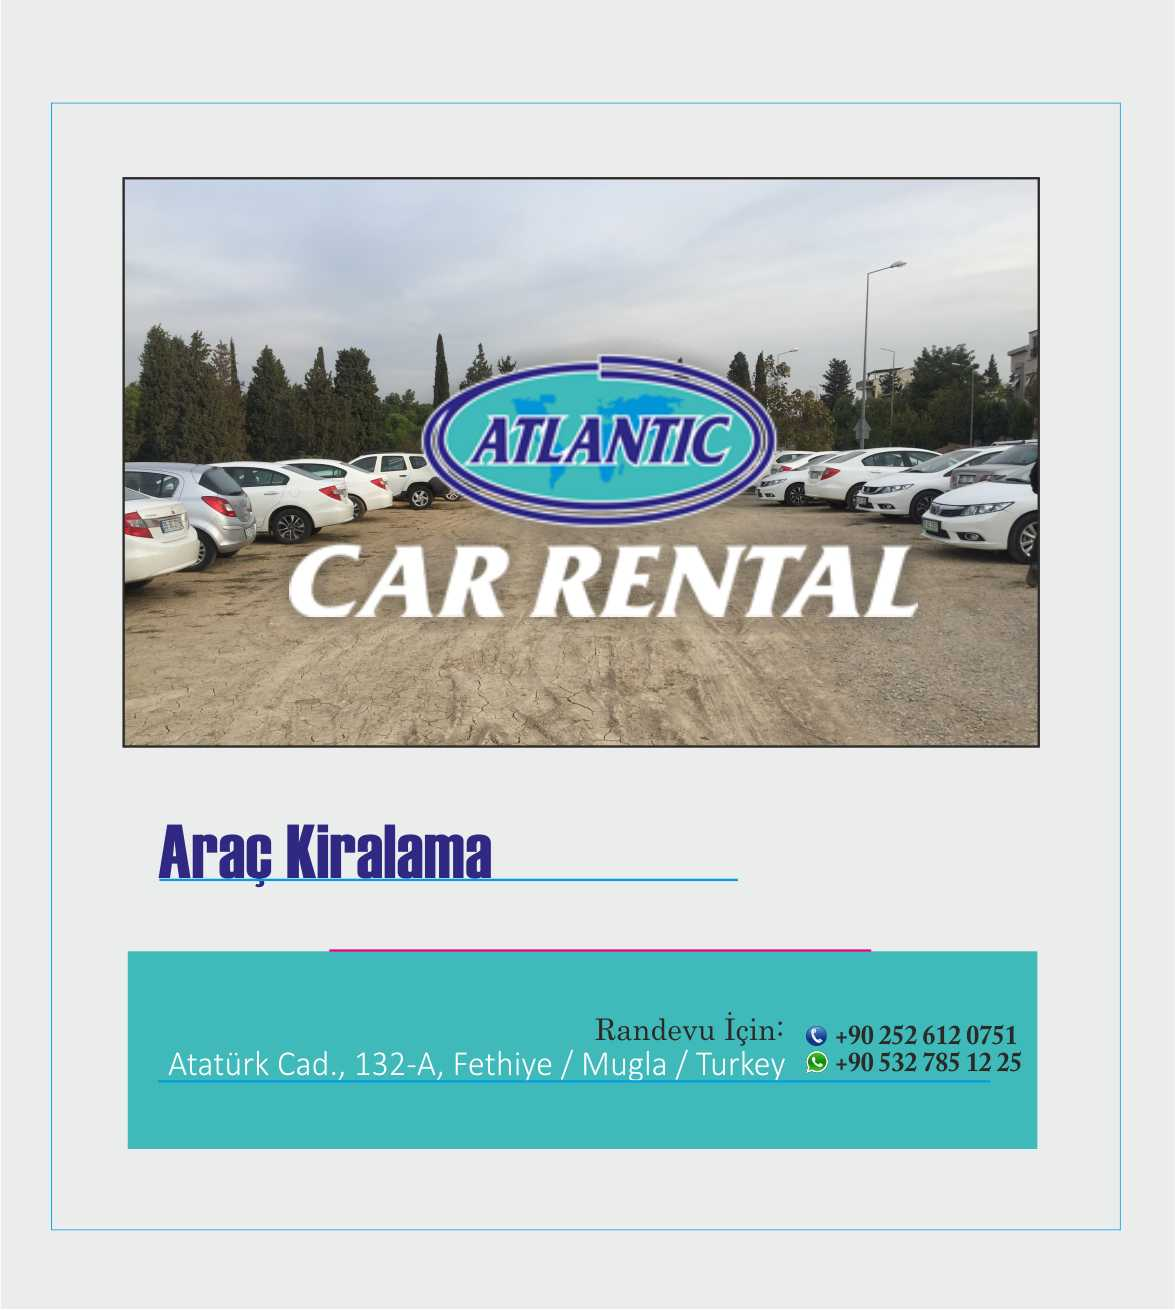 dalaman rent a car firmaları %>